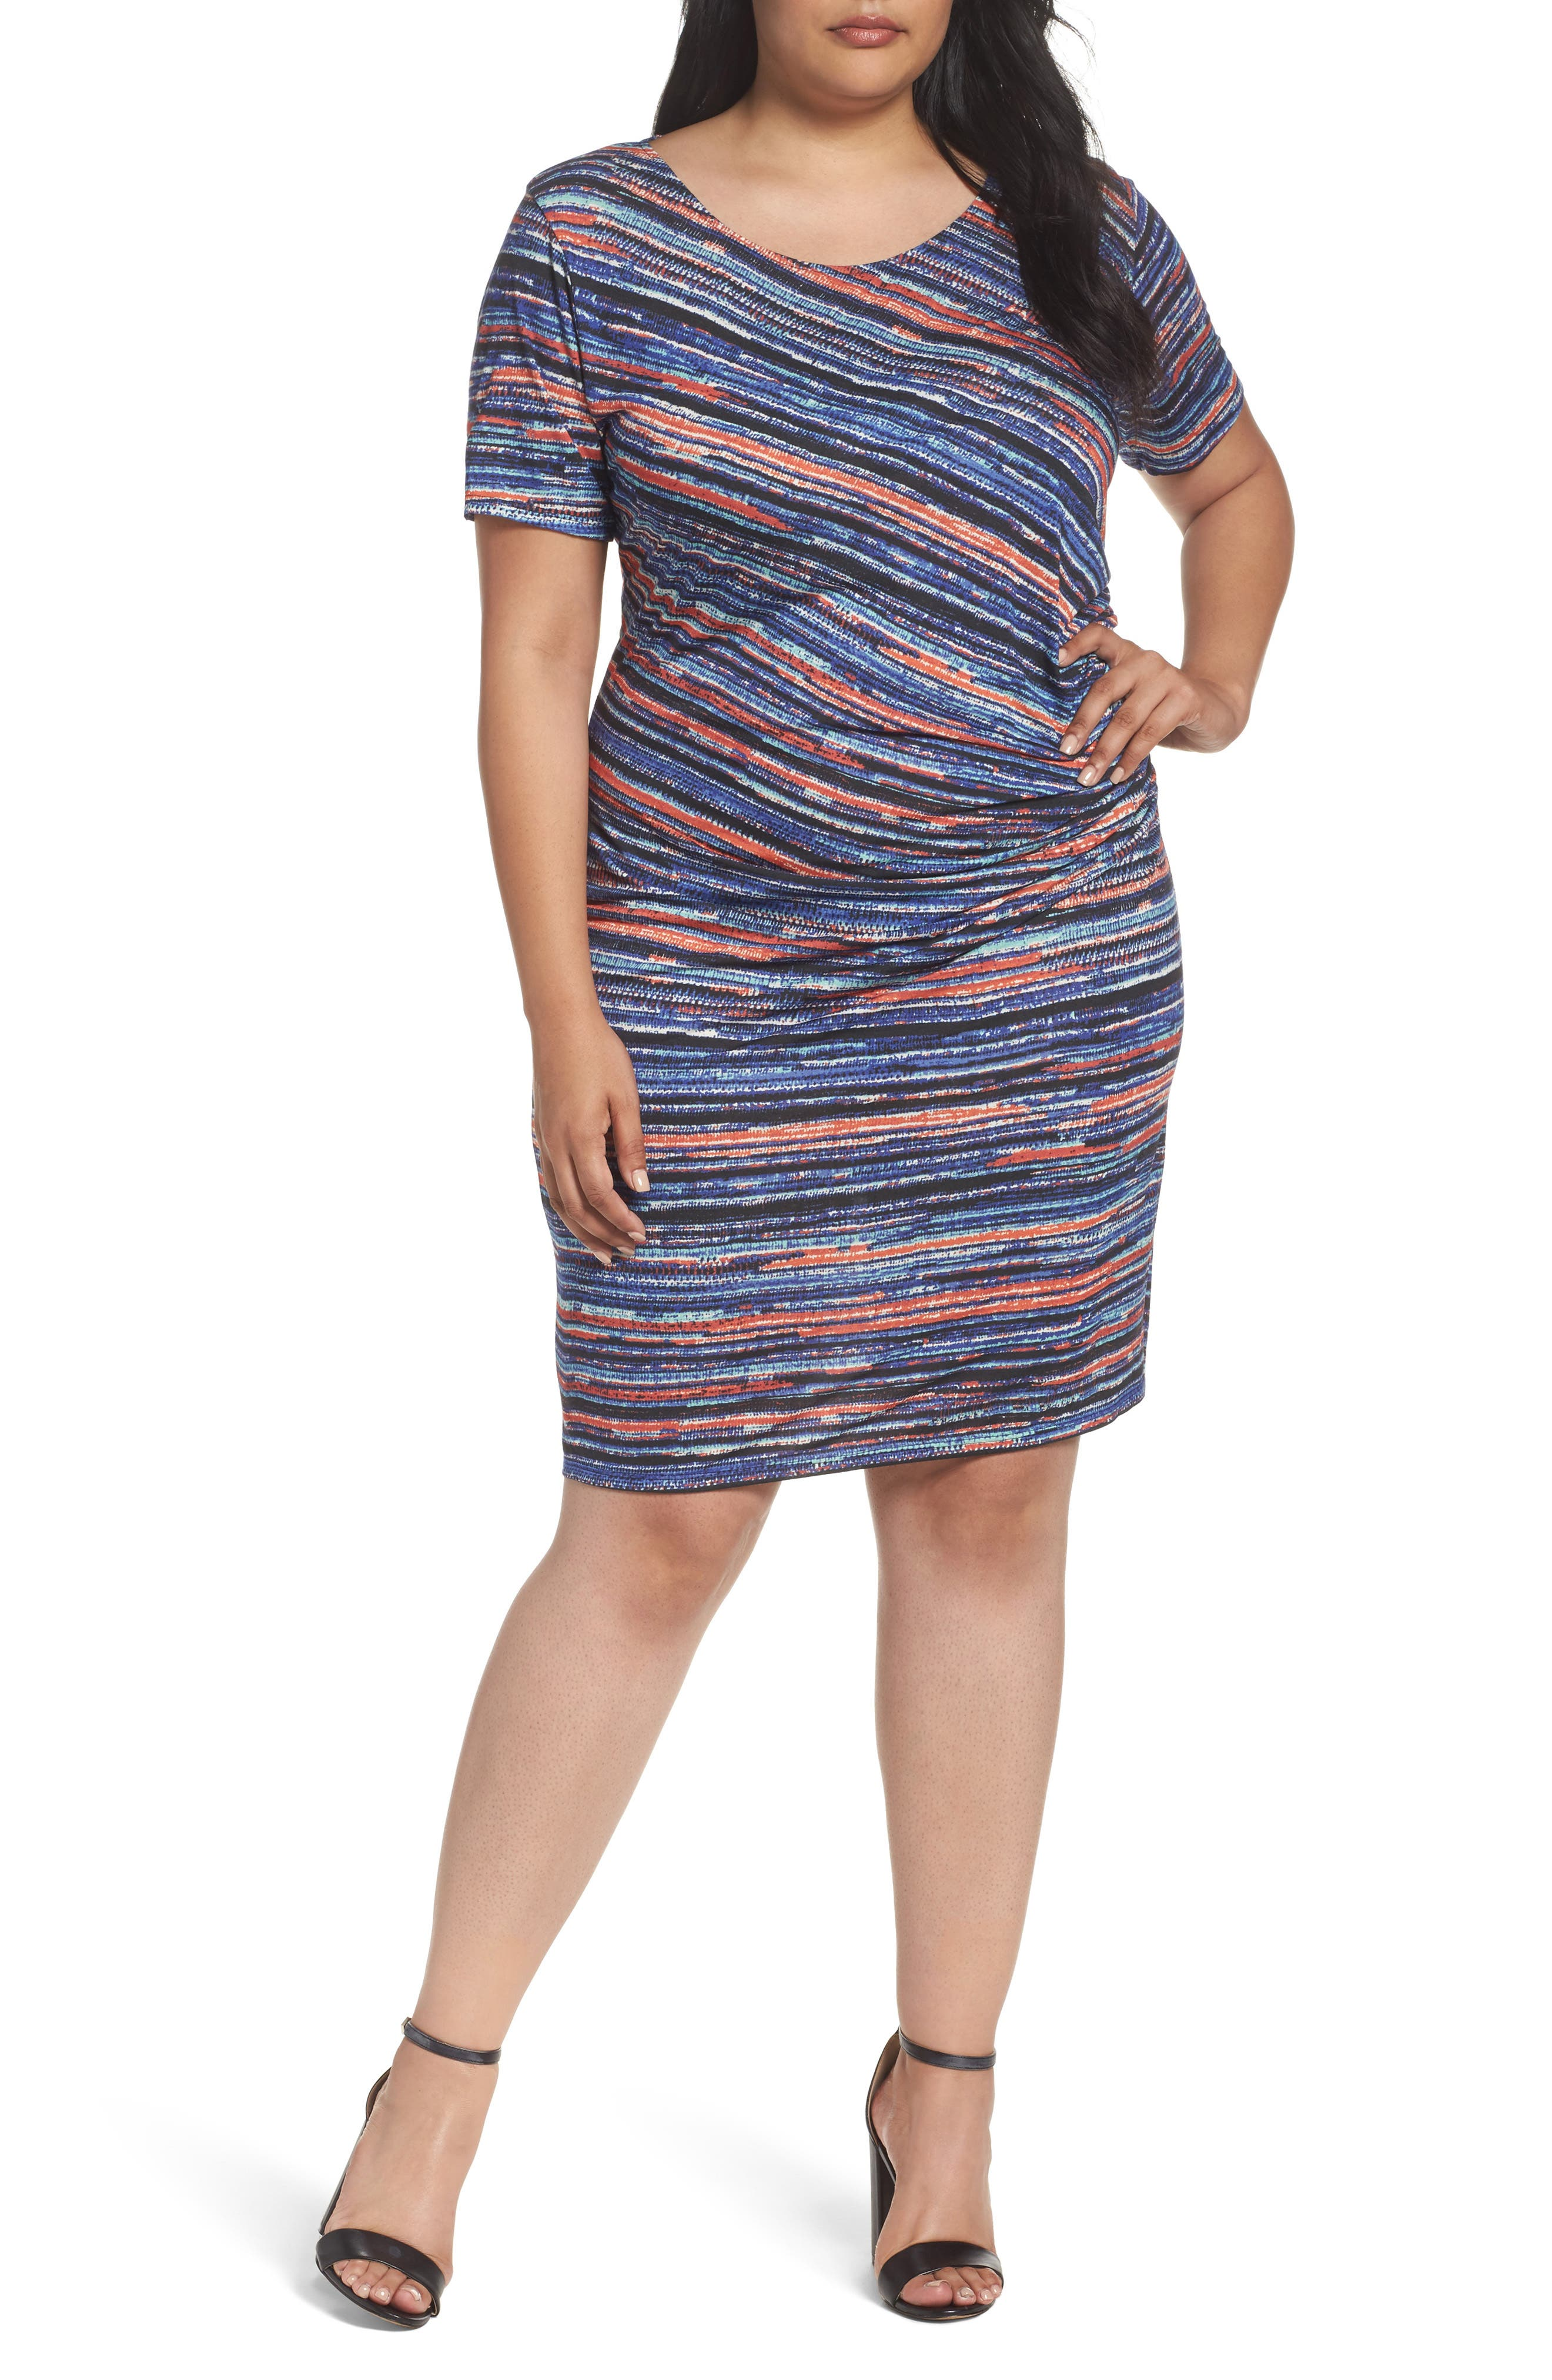 Alternate Image 1 Selected - Three Dots Painterly Stripe Sheath Dress (Plus Size)